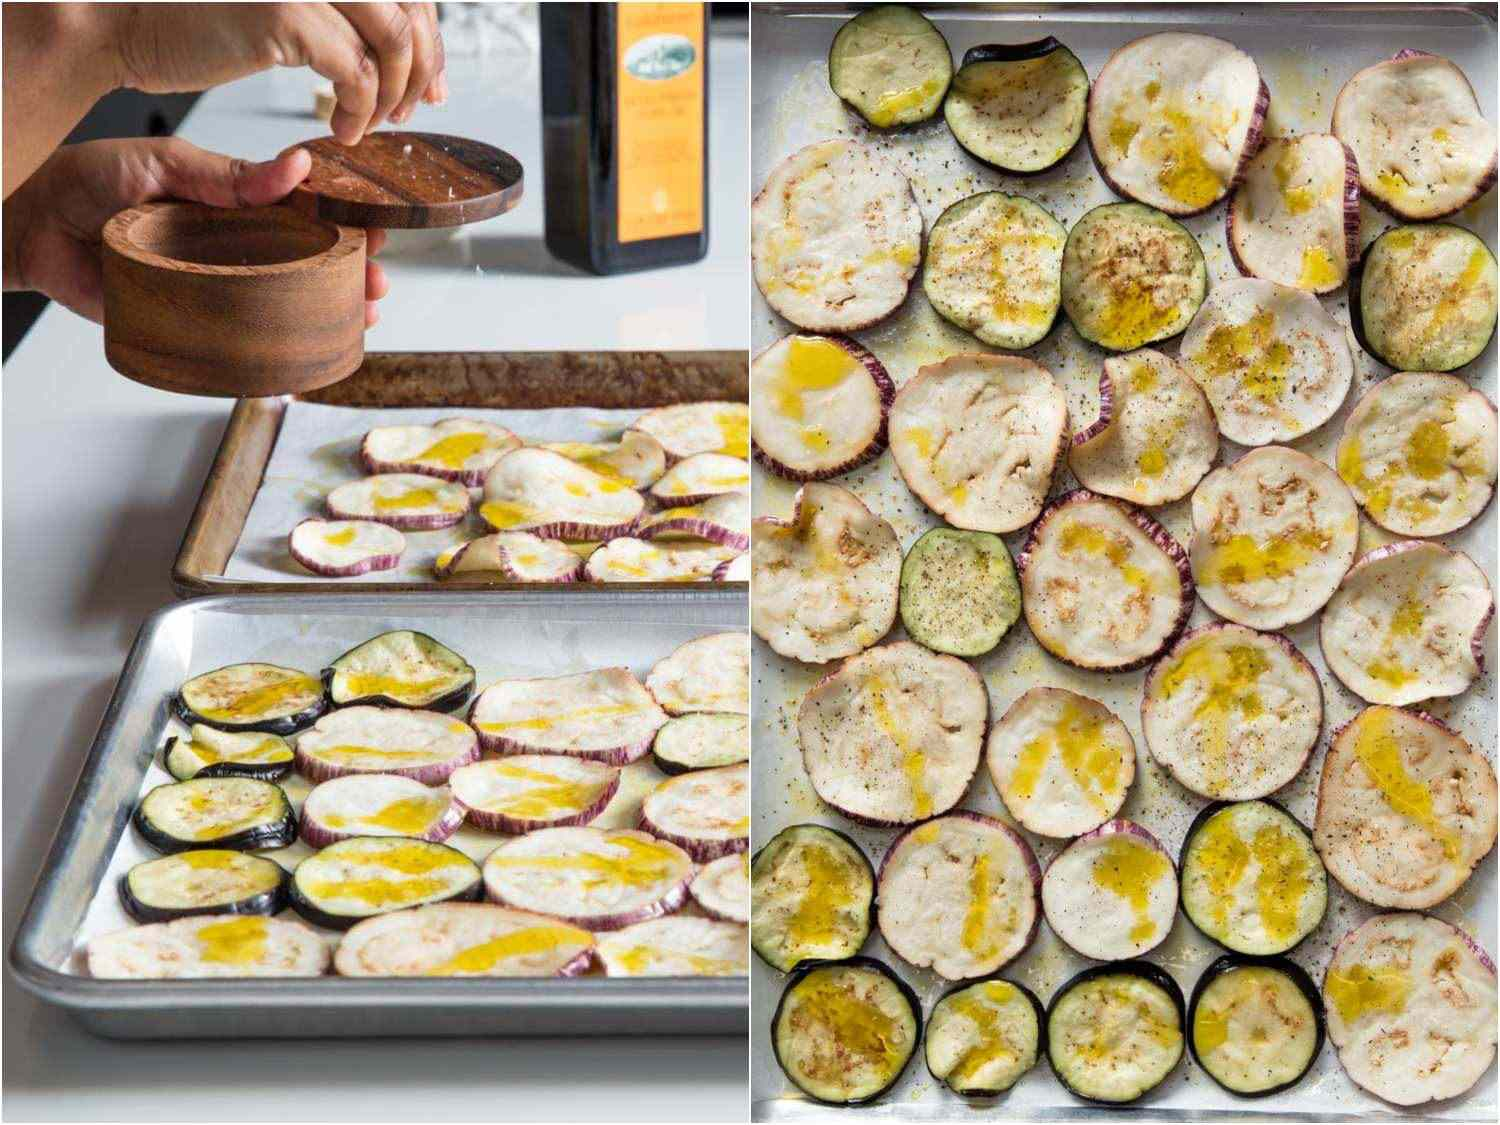 Collage of prepping eggplant for eggplant tart